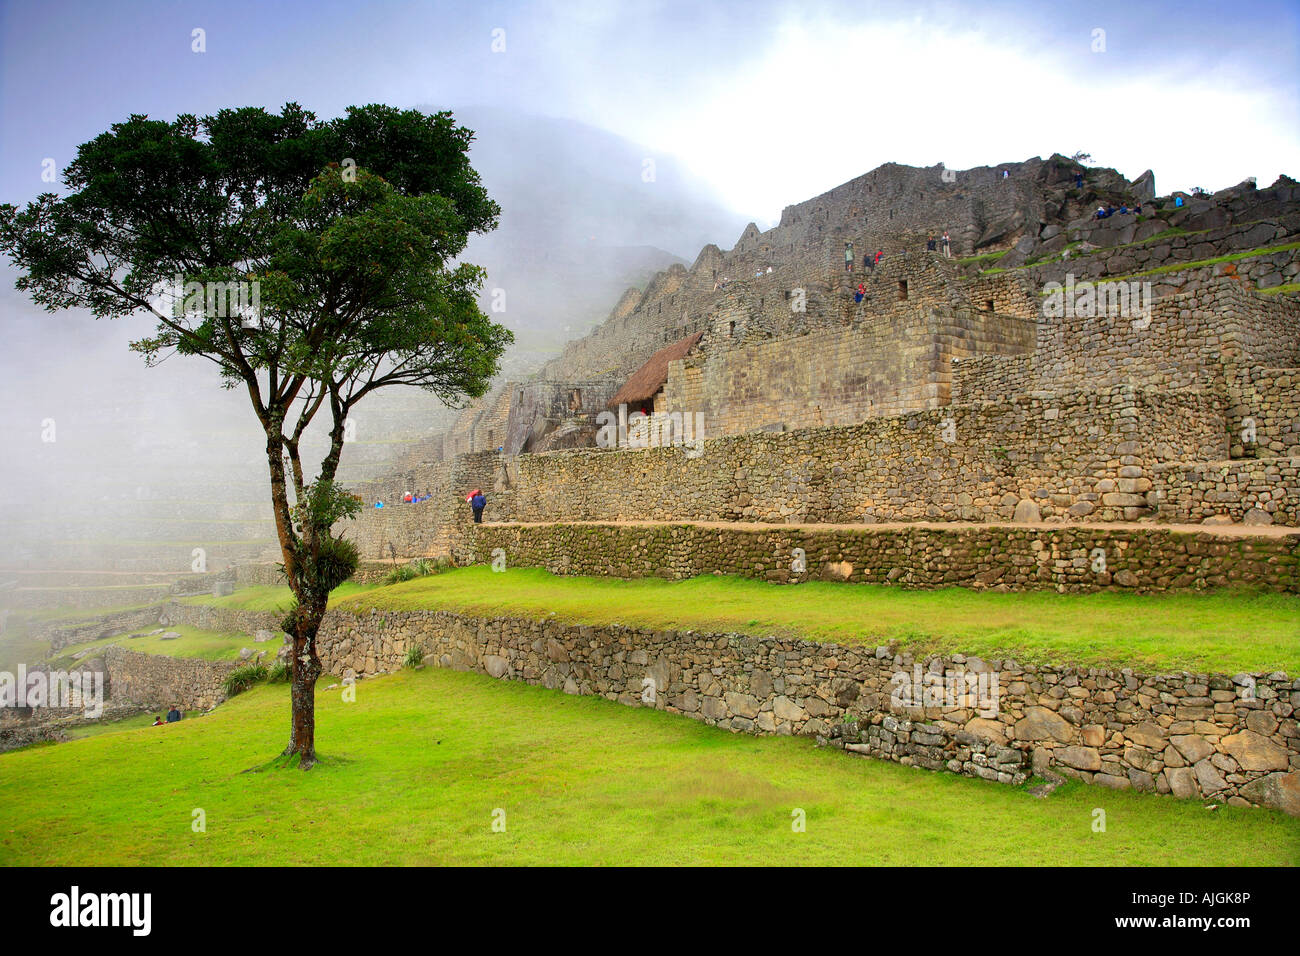 Tree in the morning mist of the urban sector of the UNESCO World Heritage Site Machu Picchu Peru Andes South America - Stock Image